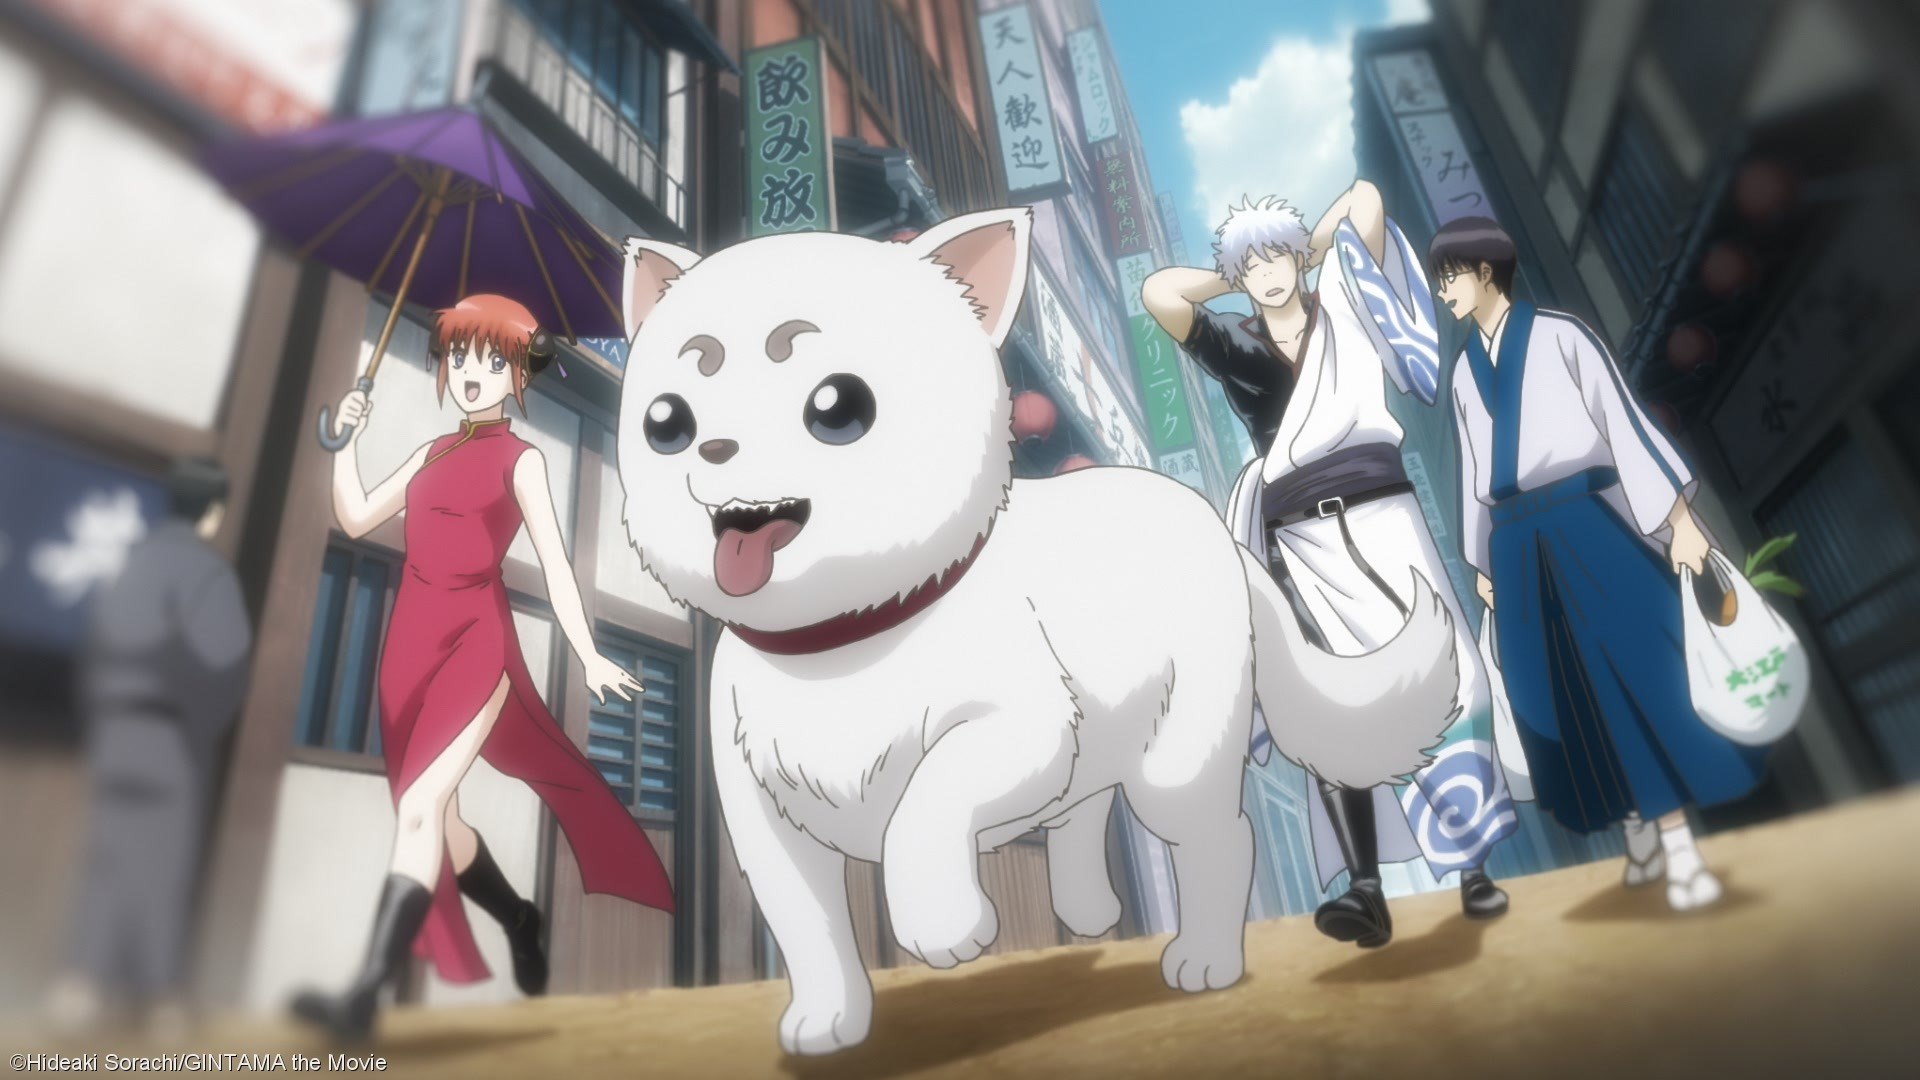 'Gintama THE VERY FINAL' Makes U.S. Theatrical Debut in November